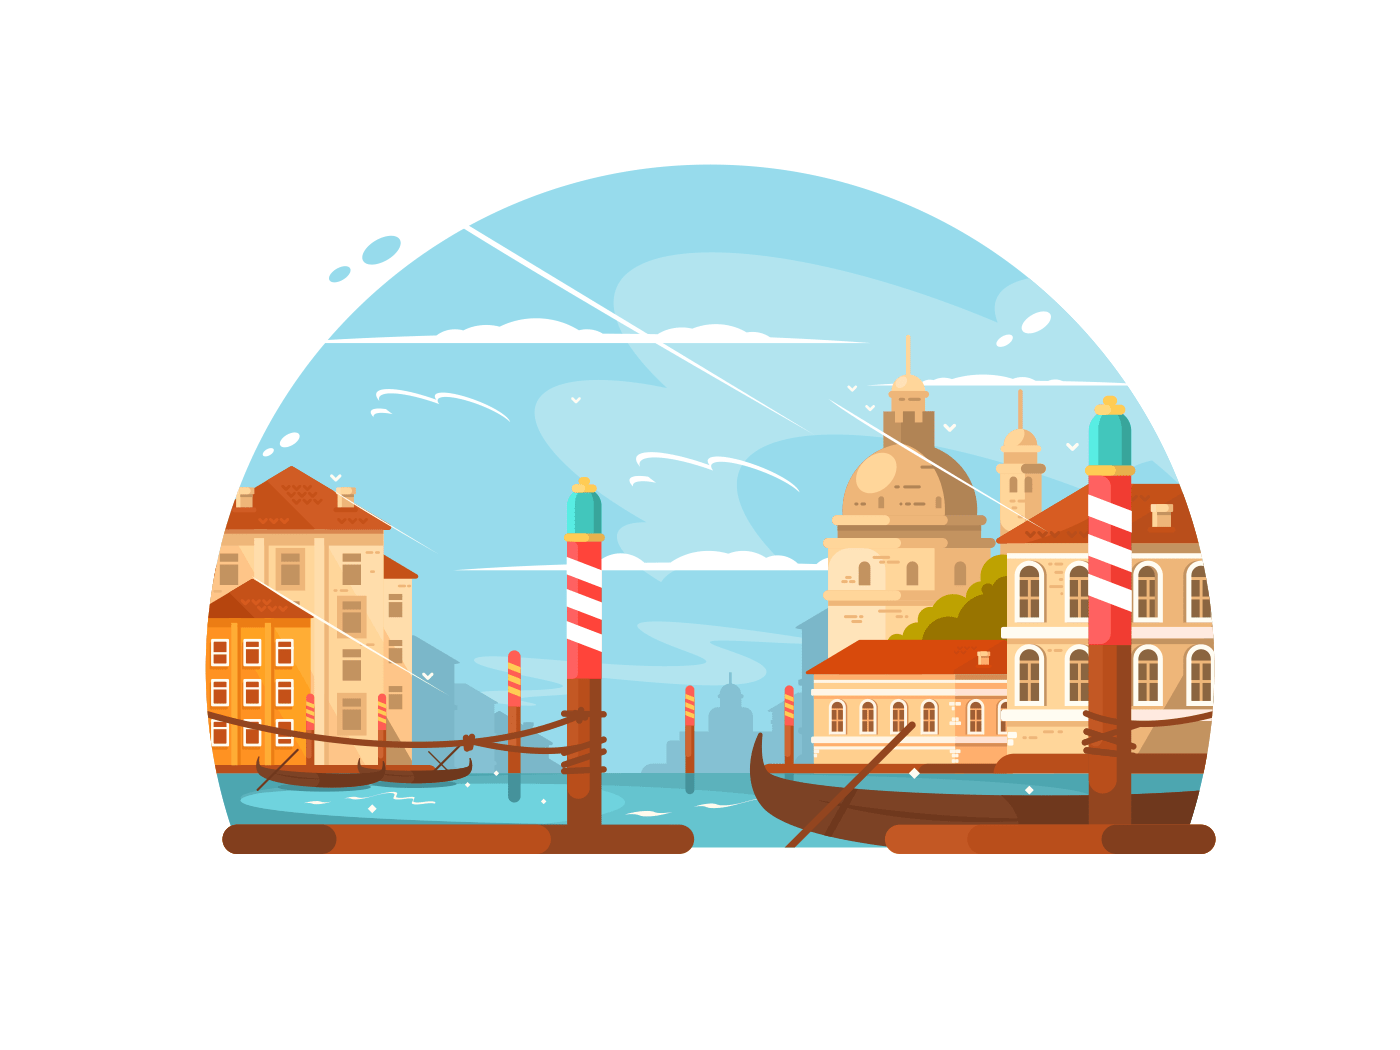 City of Venice illustration